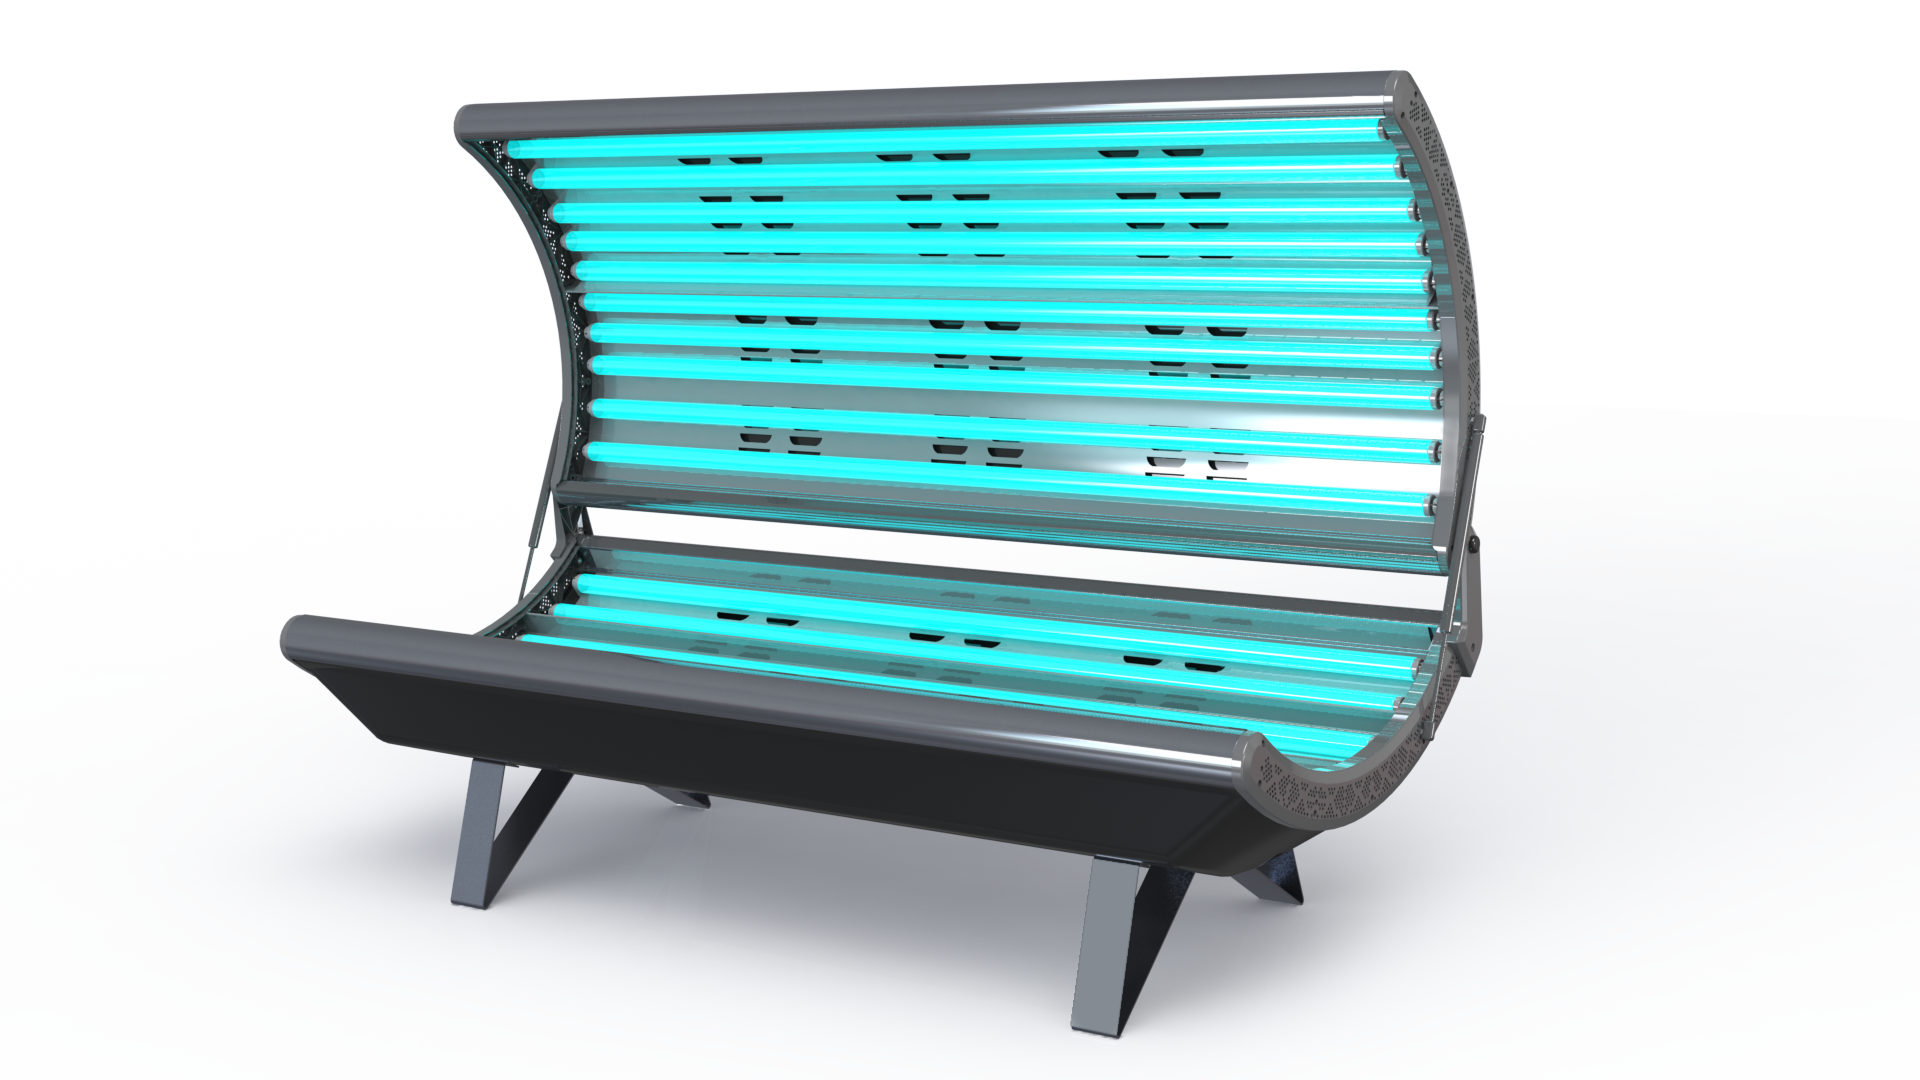 ballast beds bed buy for pin electronic tanning booths and